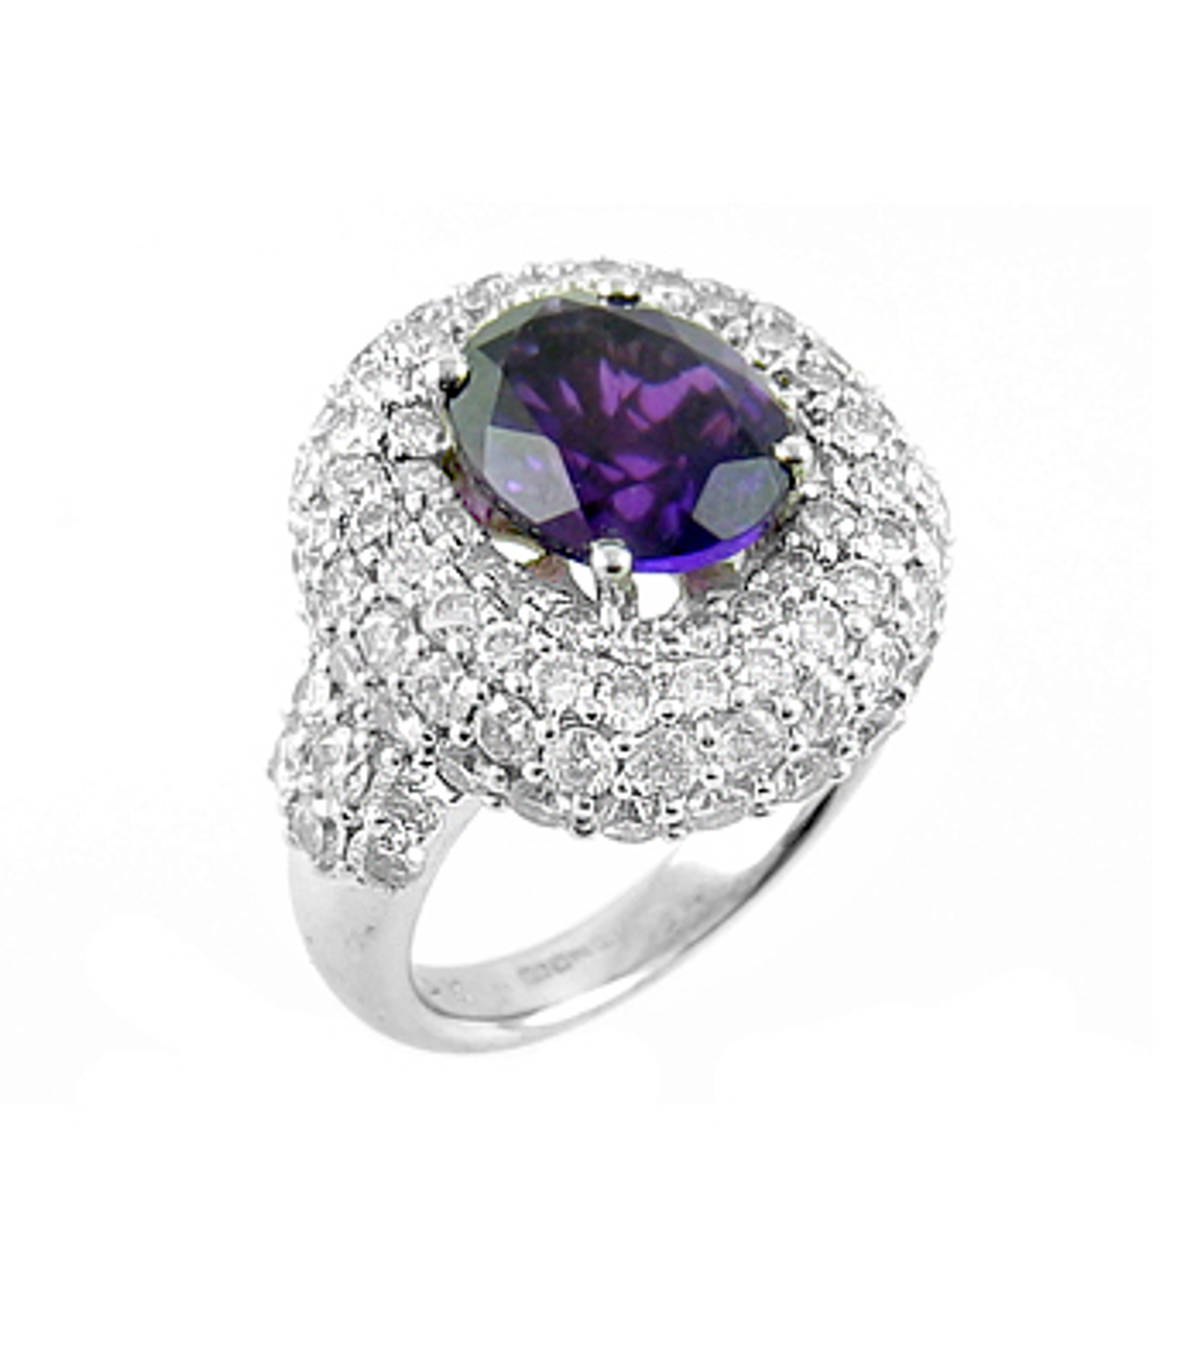 Amethyst and diamond cluster ringPictured item: amethyst: 1.00ct/diamonds: 2.85ct set in 18k white gold